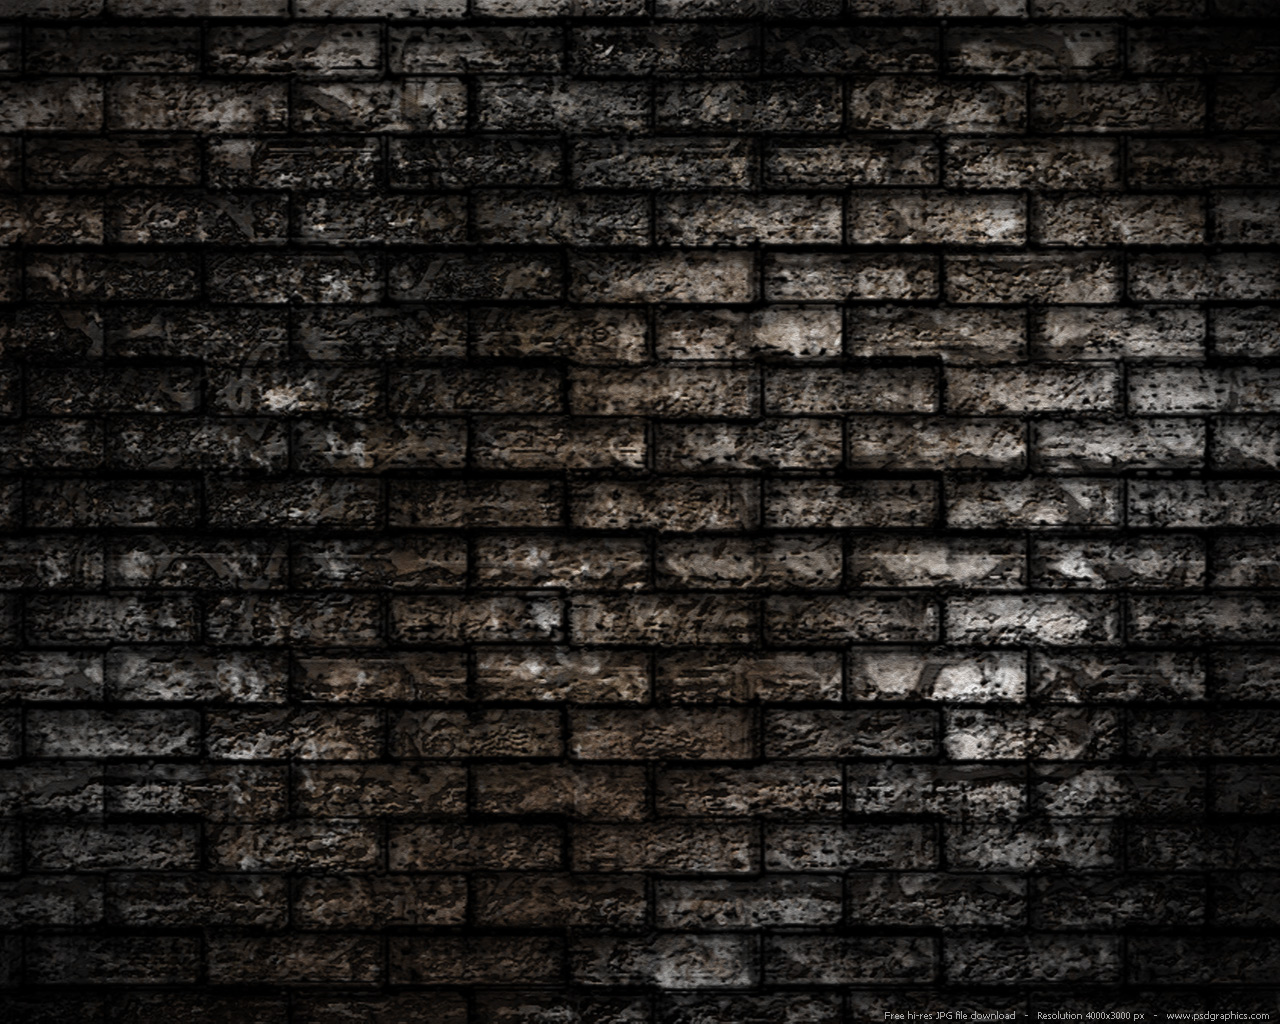 Black Brick Wall Black Brick Wall Texture Bricks Brick Wall Texture